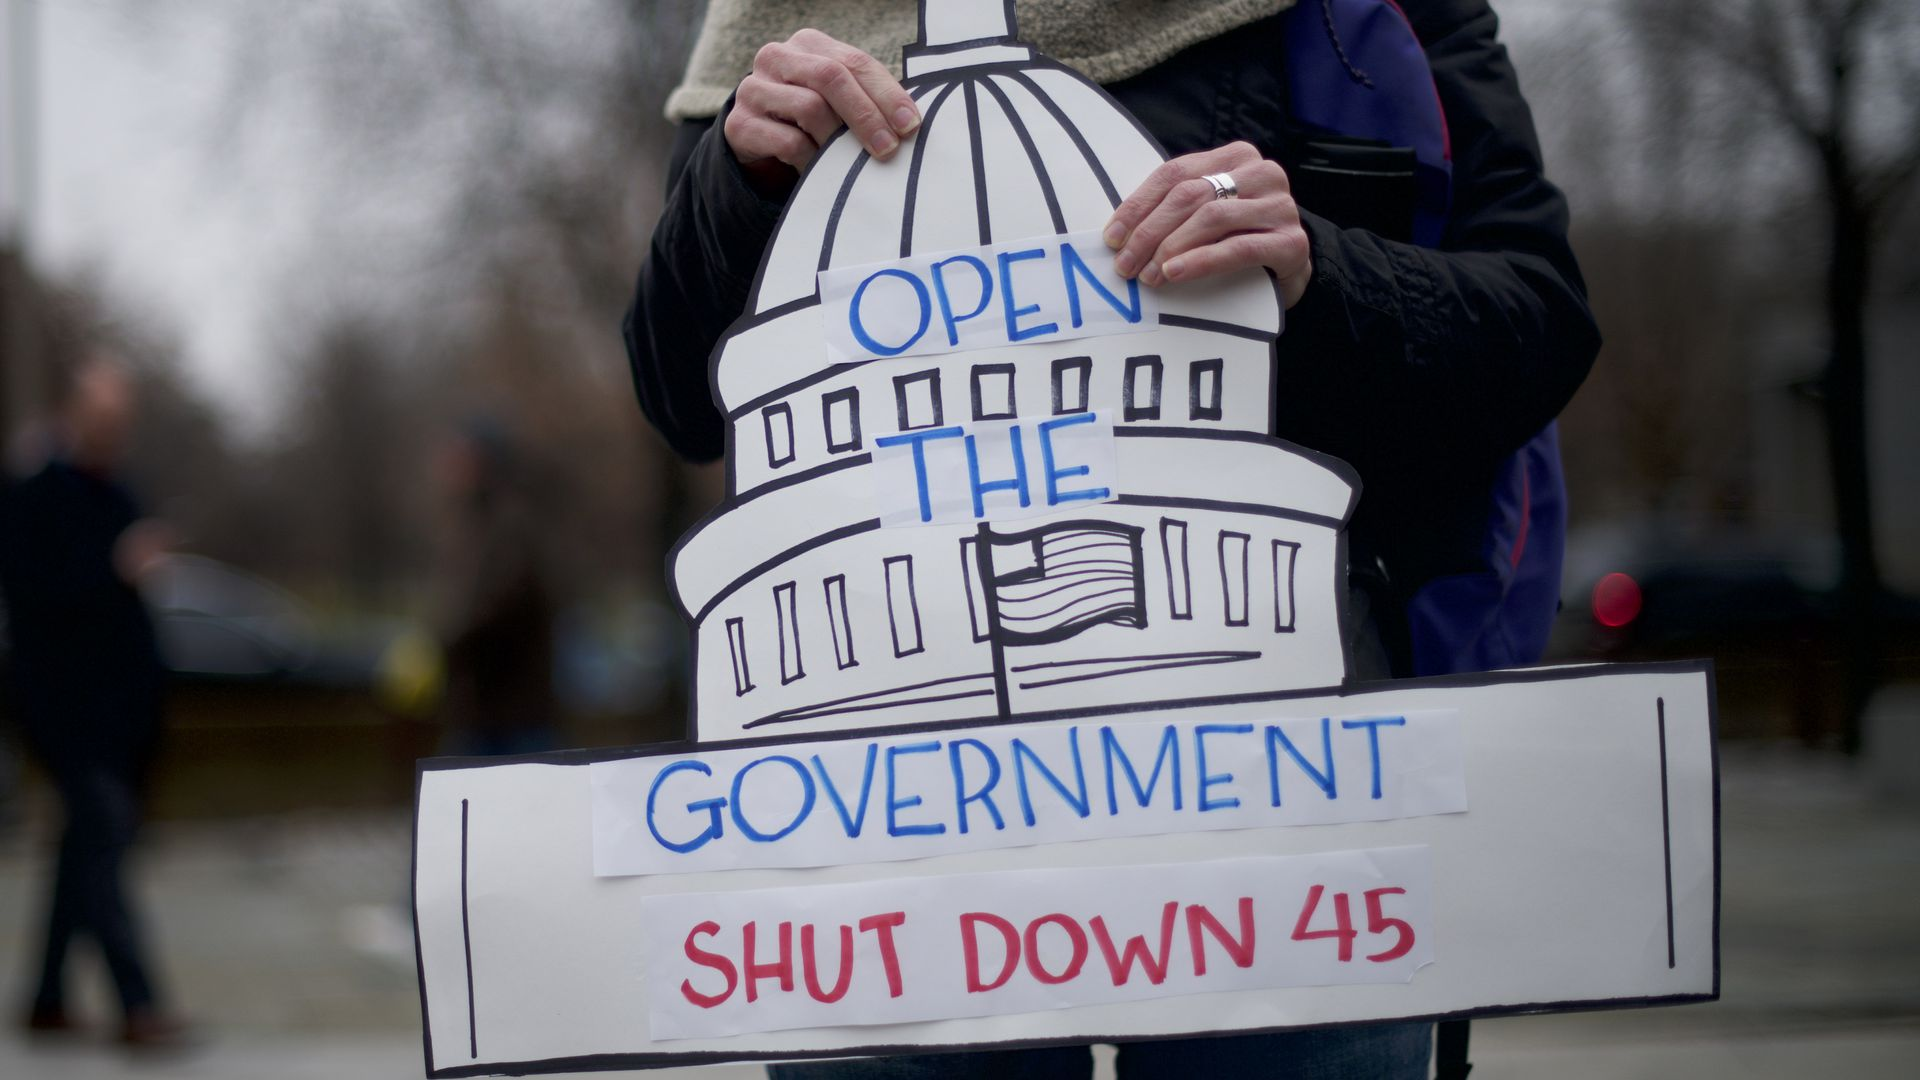 demonstrator holds a sign shaped as the U.S. Capitol building stating 'OPEN THE GOVERNMENT SHUT DOWN 45'